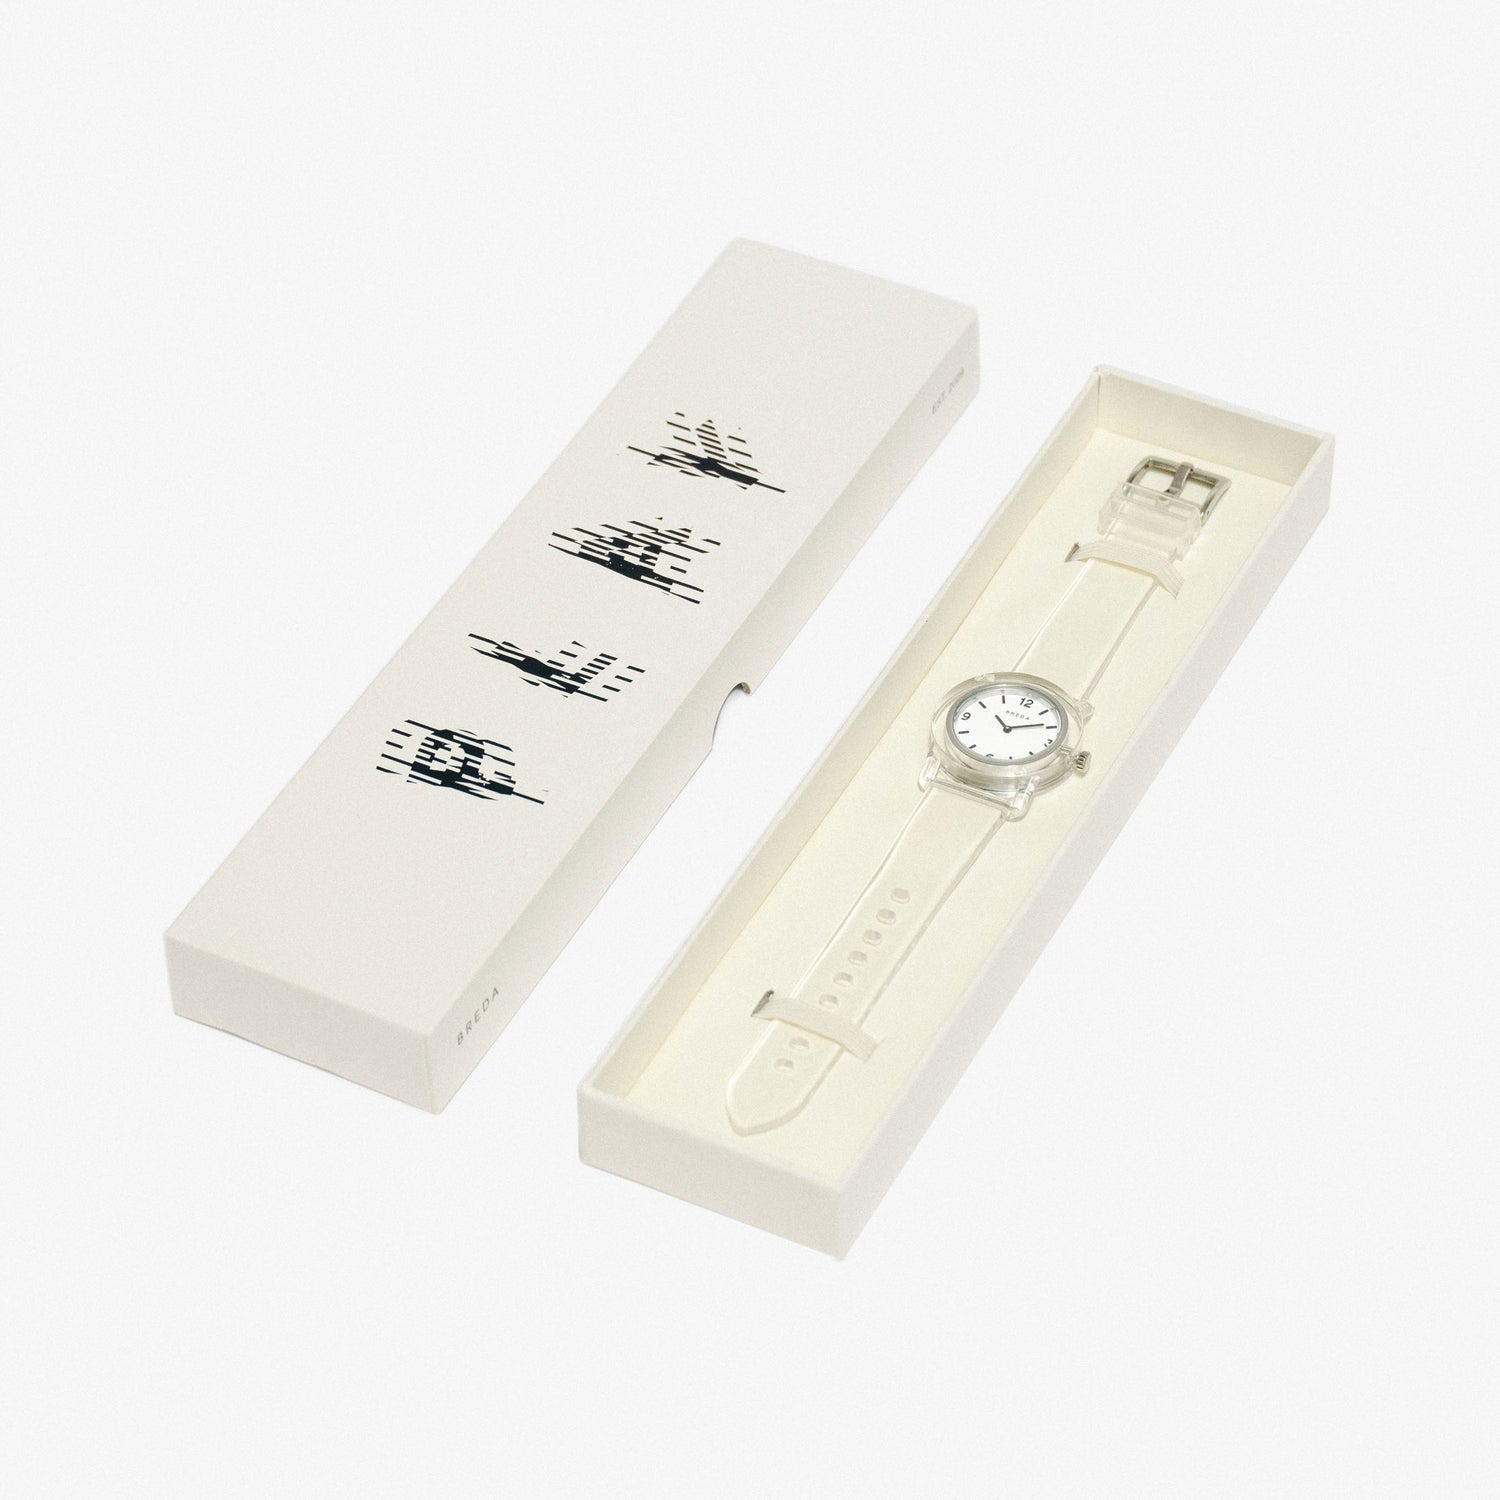 breda-play-1742d-silver-clear-plastic-watch-packaging